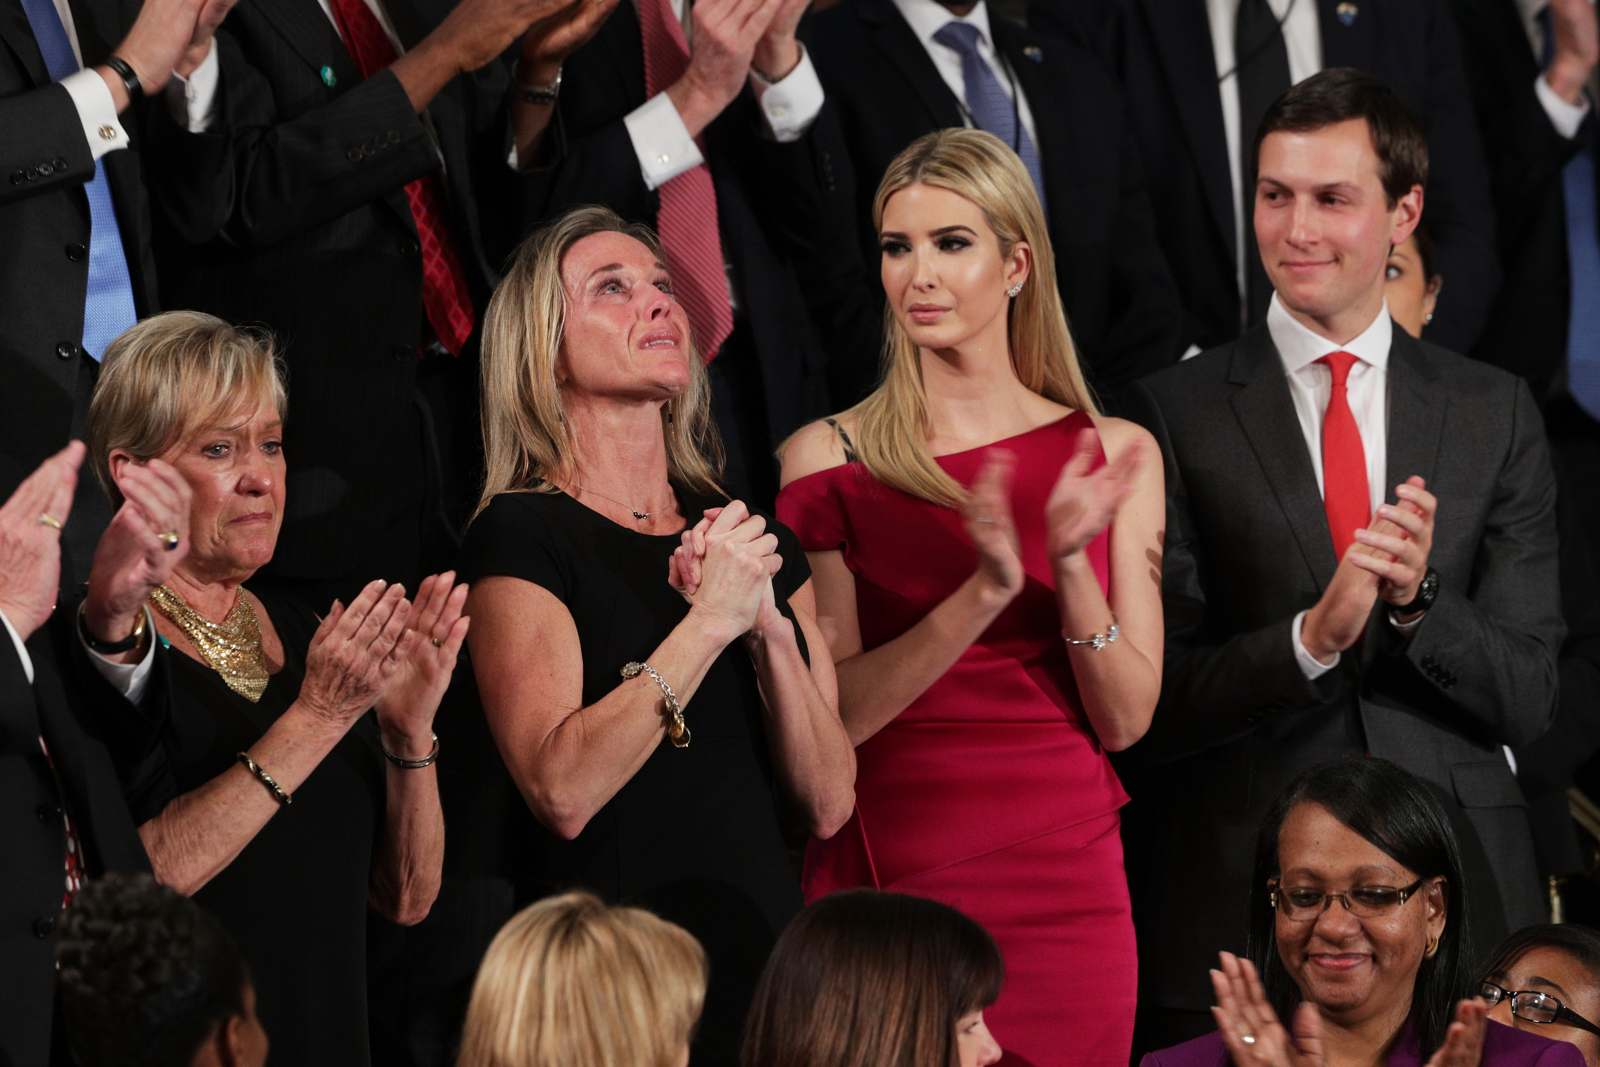 Widow of fallen Navy Seal William Owens, Carryn Owens, Ivanka Trump and White House senior adviser Jared Kushner attend a joint session of Congress with President Donald Trump on Feb. 28, 2017. (Photo by Alex Wong/Getty Images)